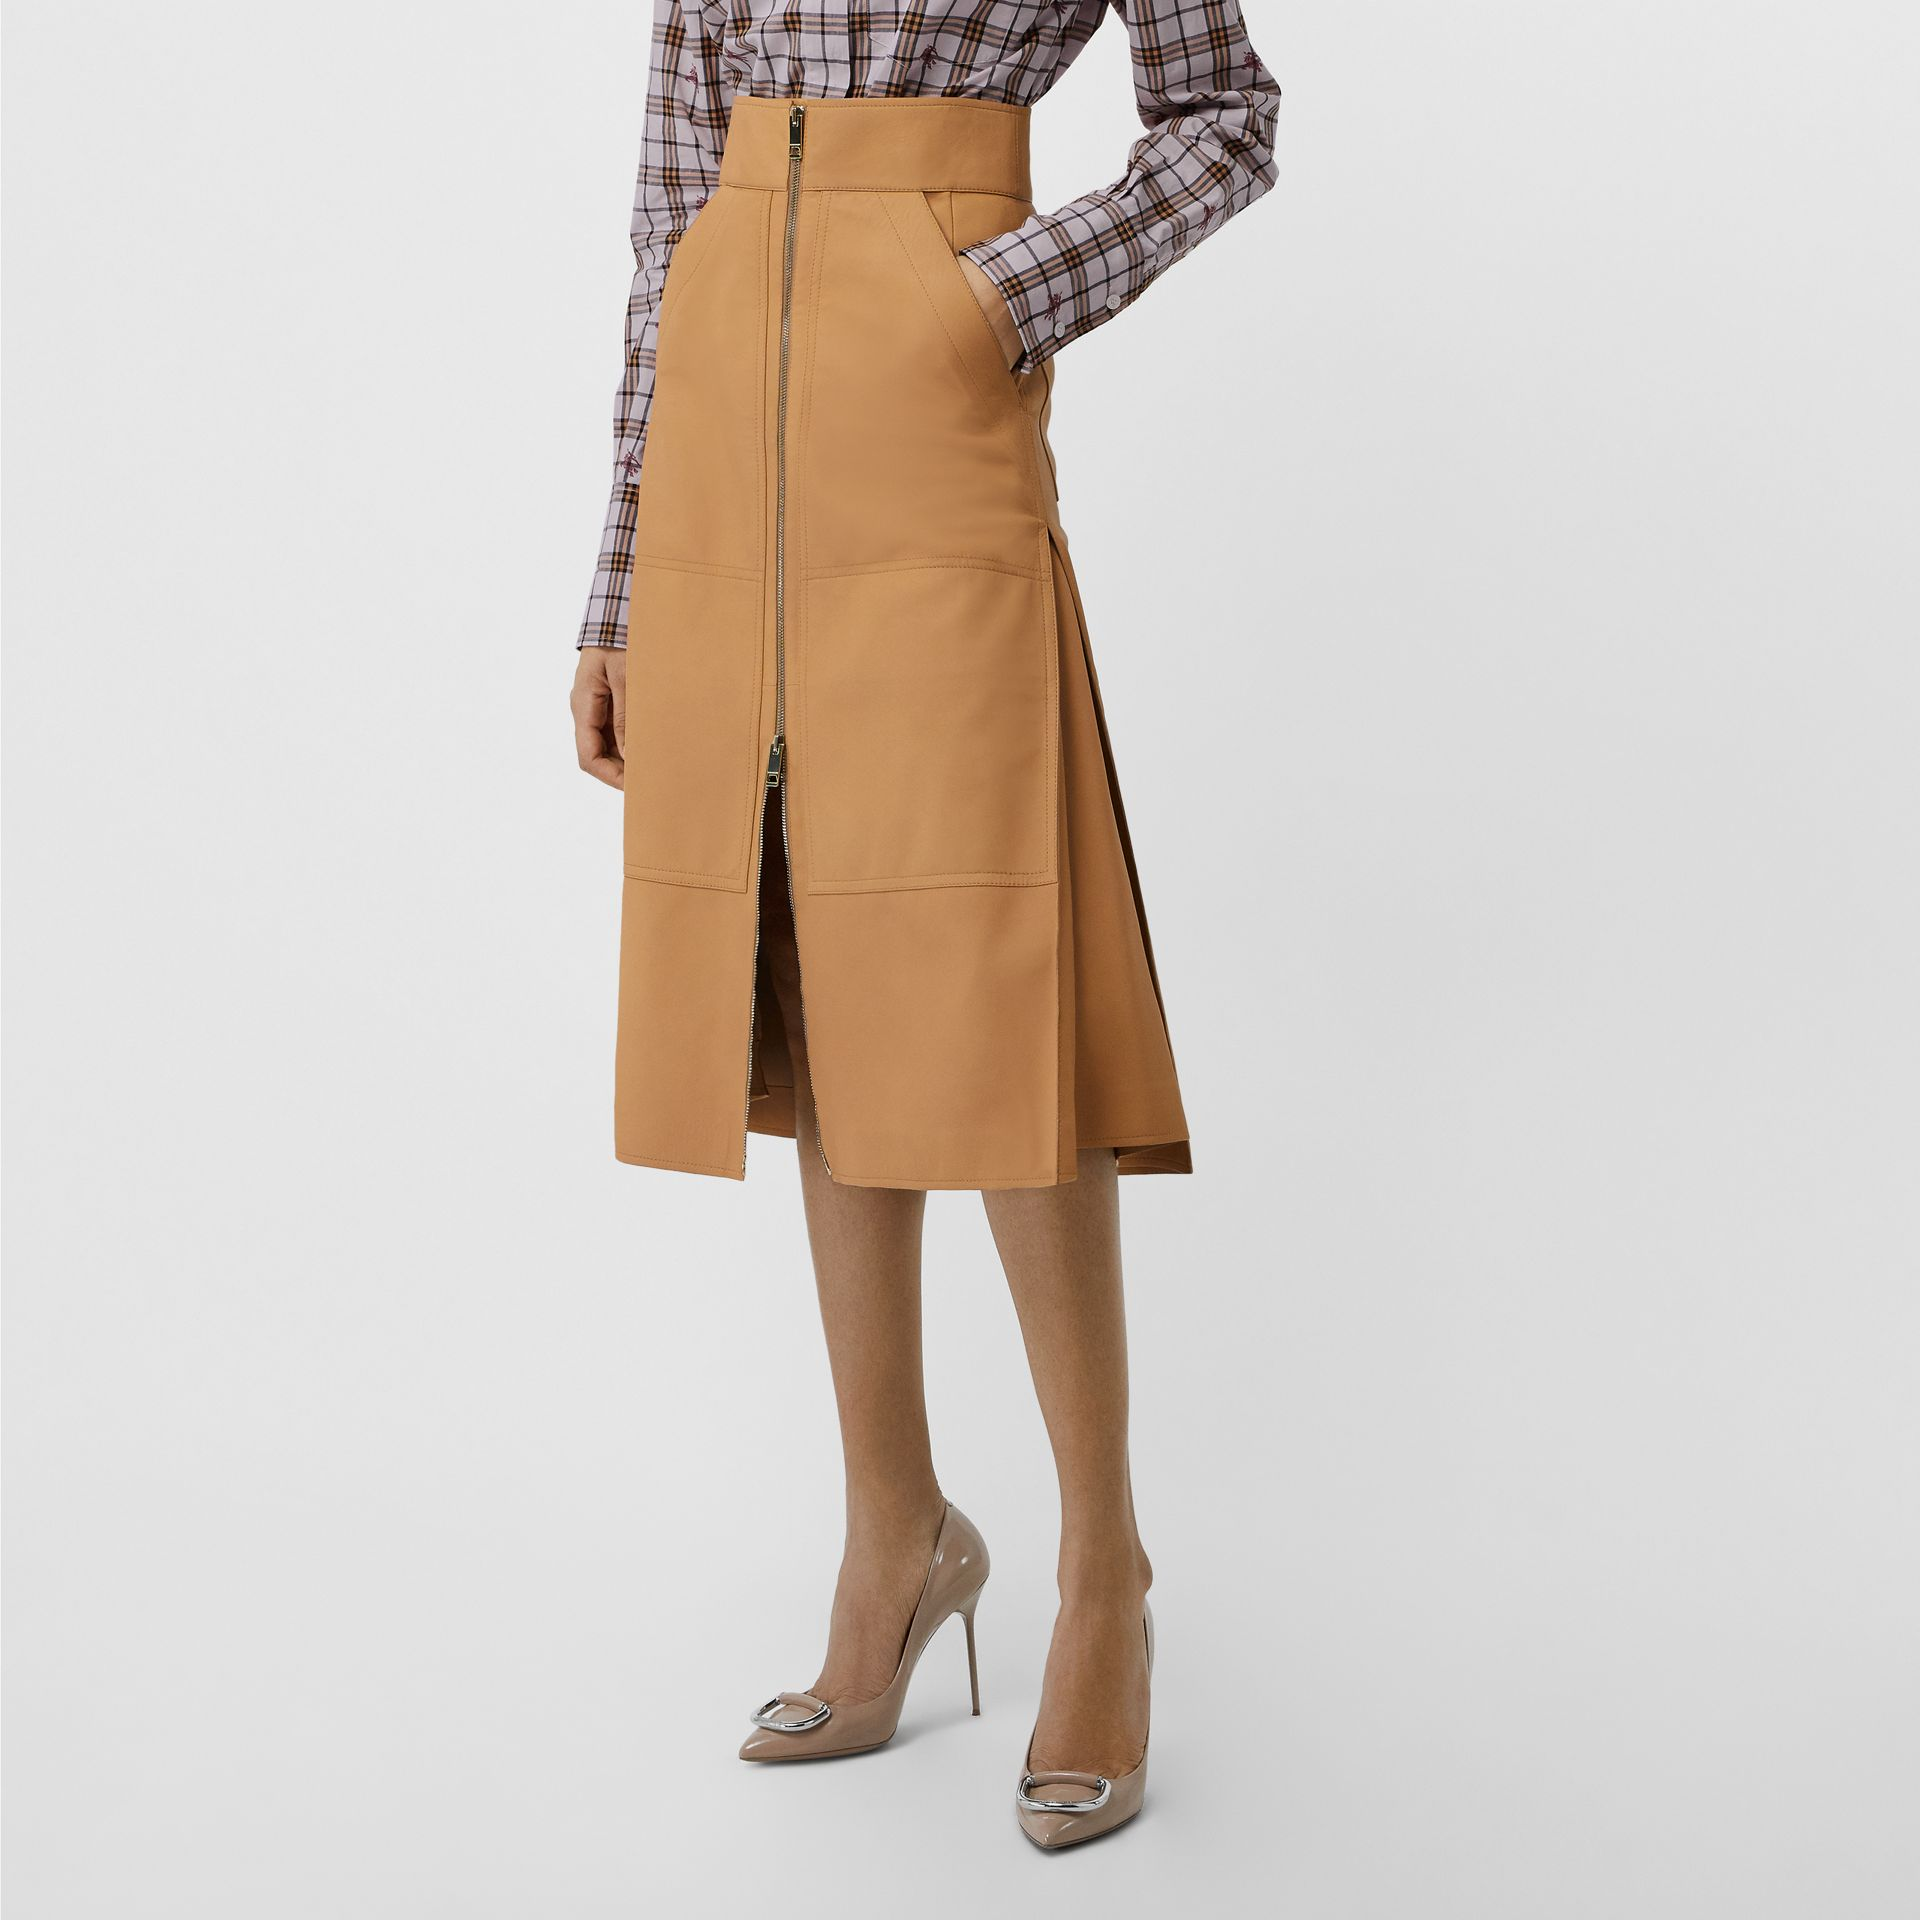 Lambskin High-waisted Skirt in Caramel - Women | Burberry - gallery image 5